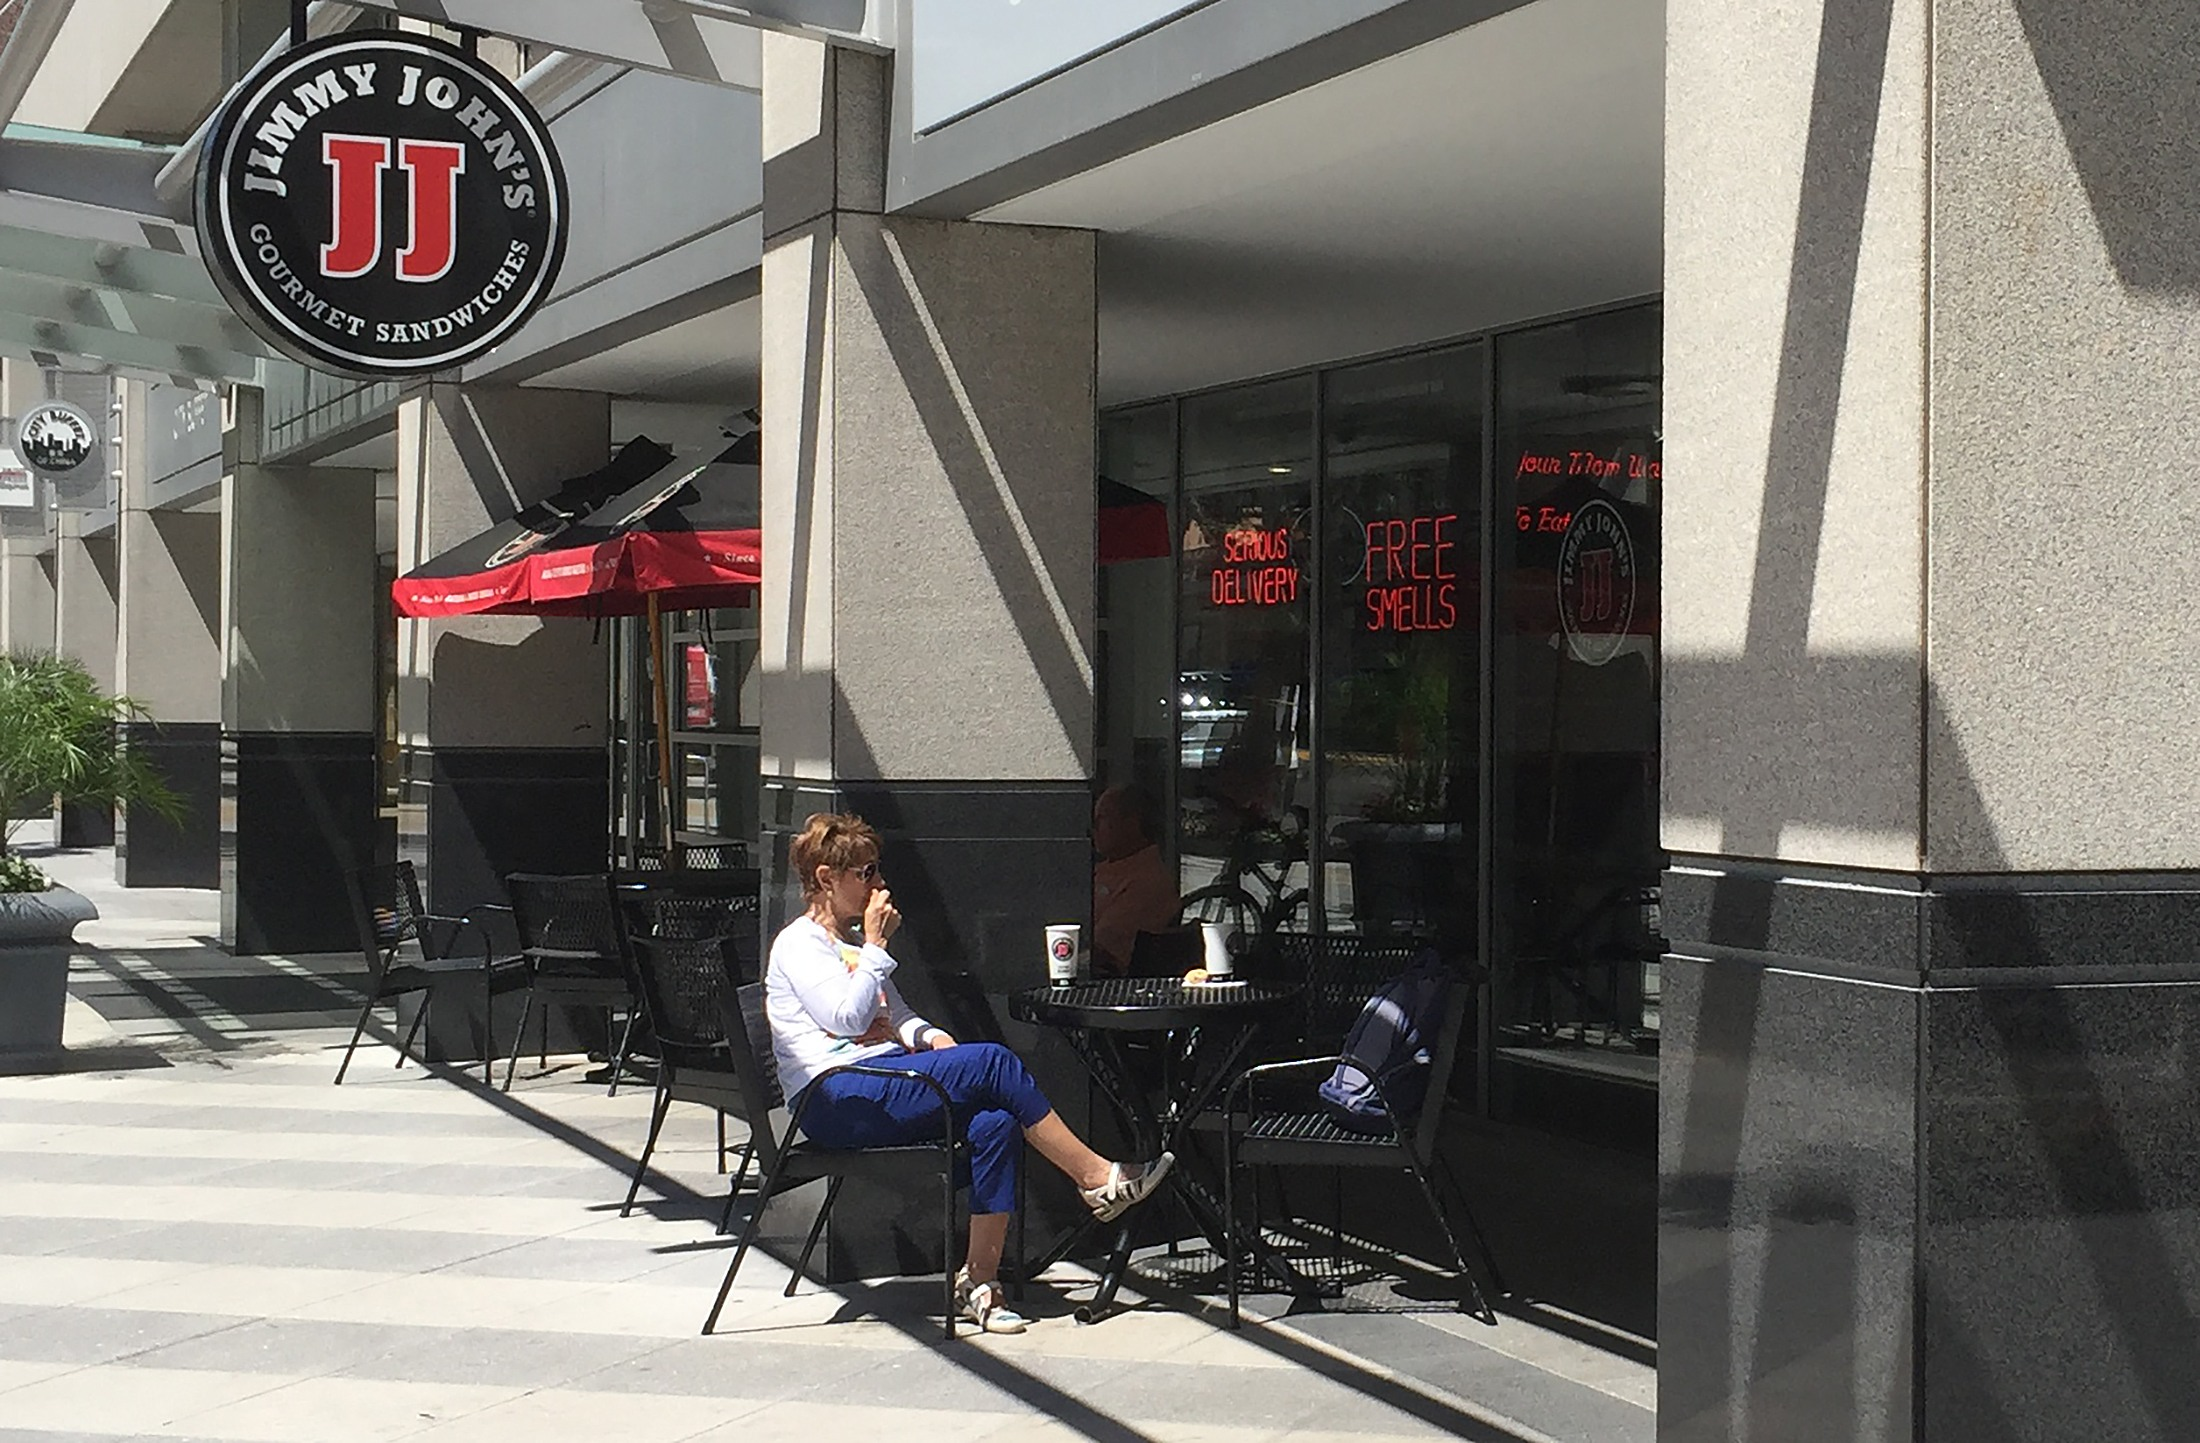 People sit outside one of the shops of Jimmy John's